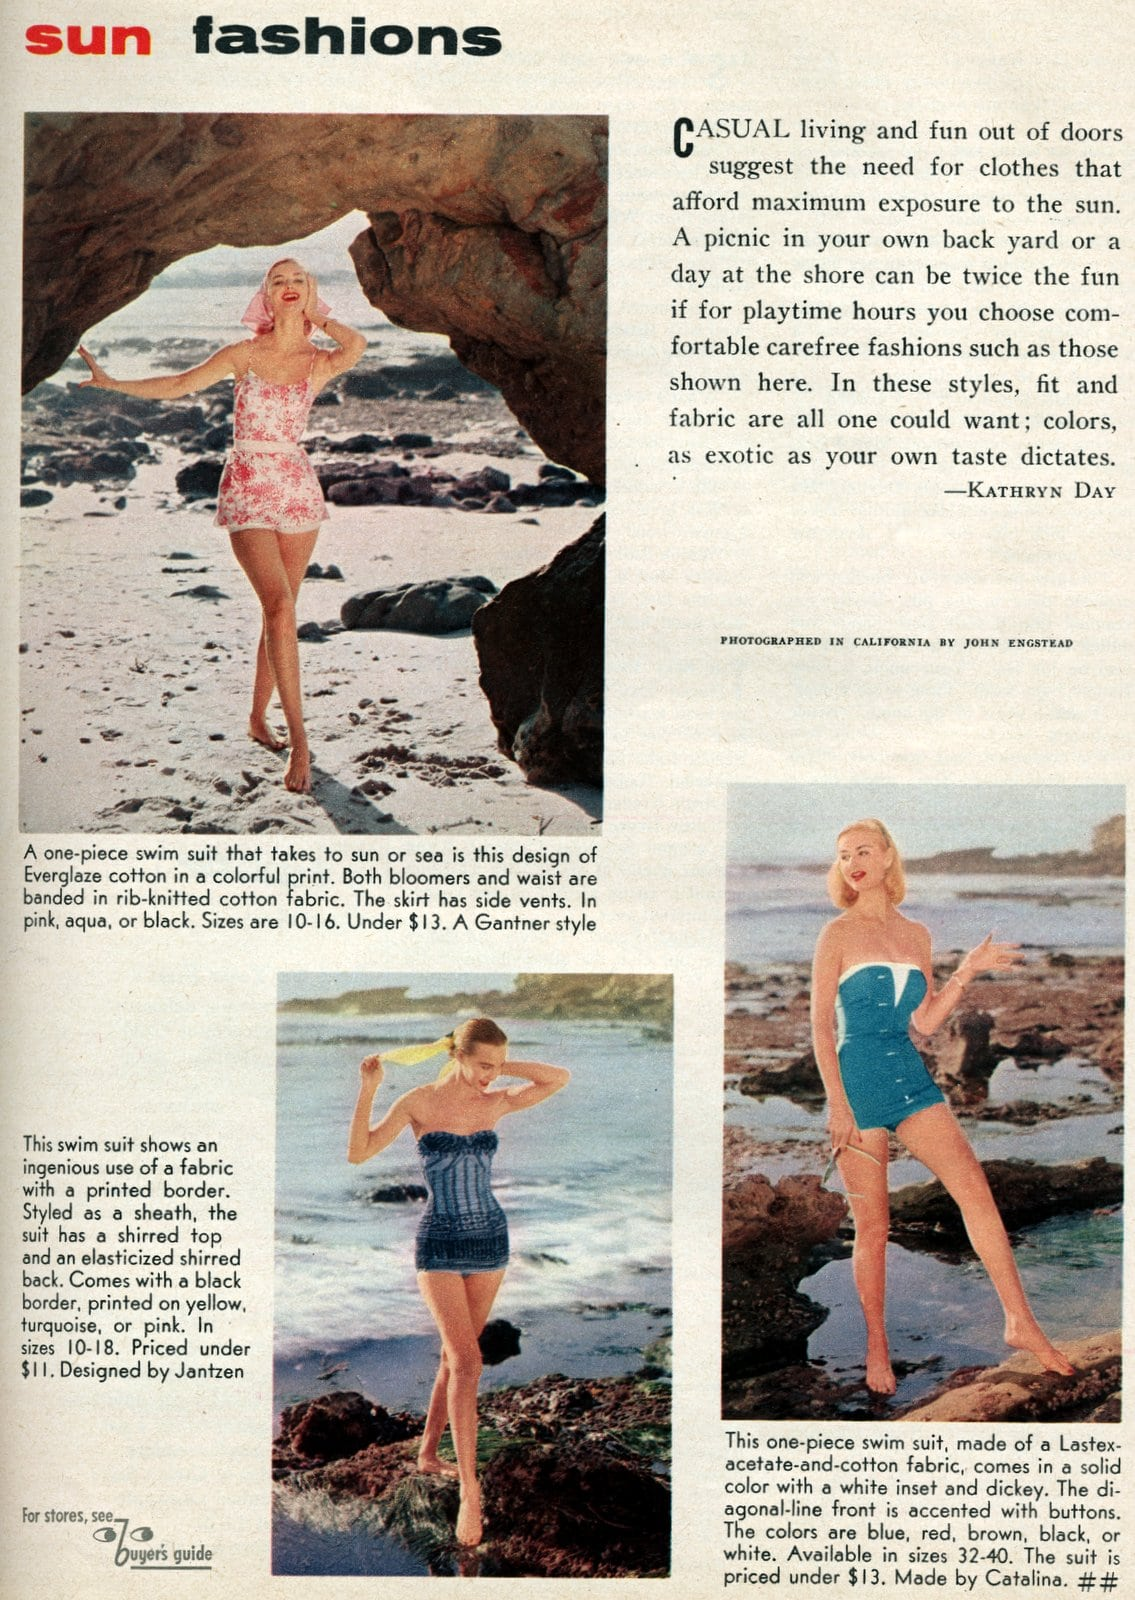 Vintage playwear - summer fashhions for women from the 1950s (4)